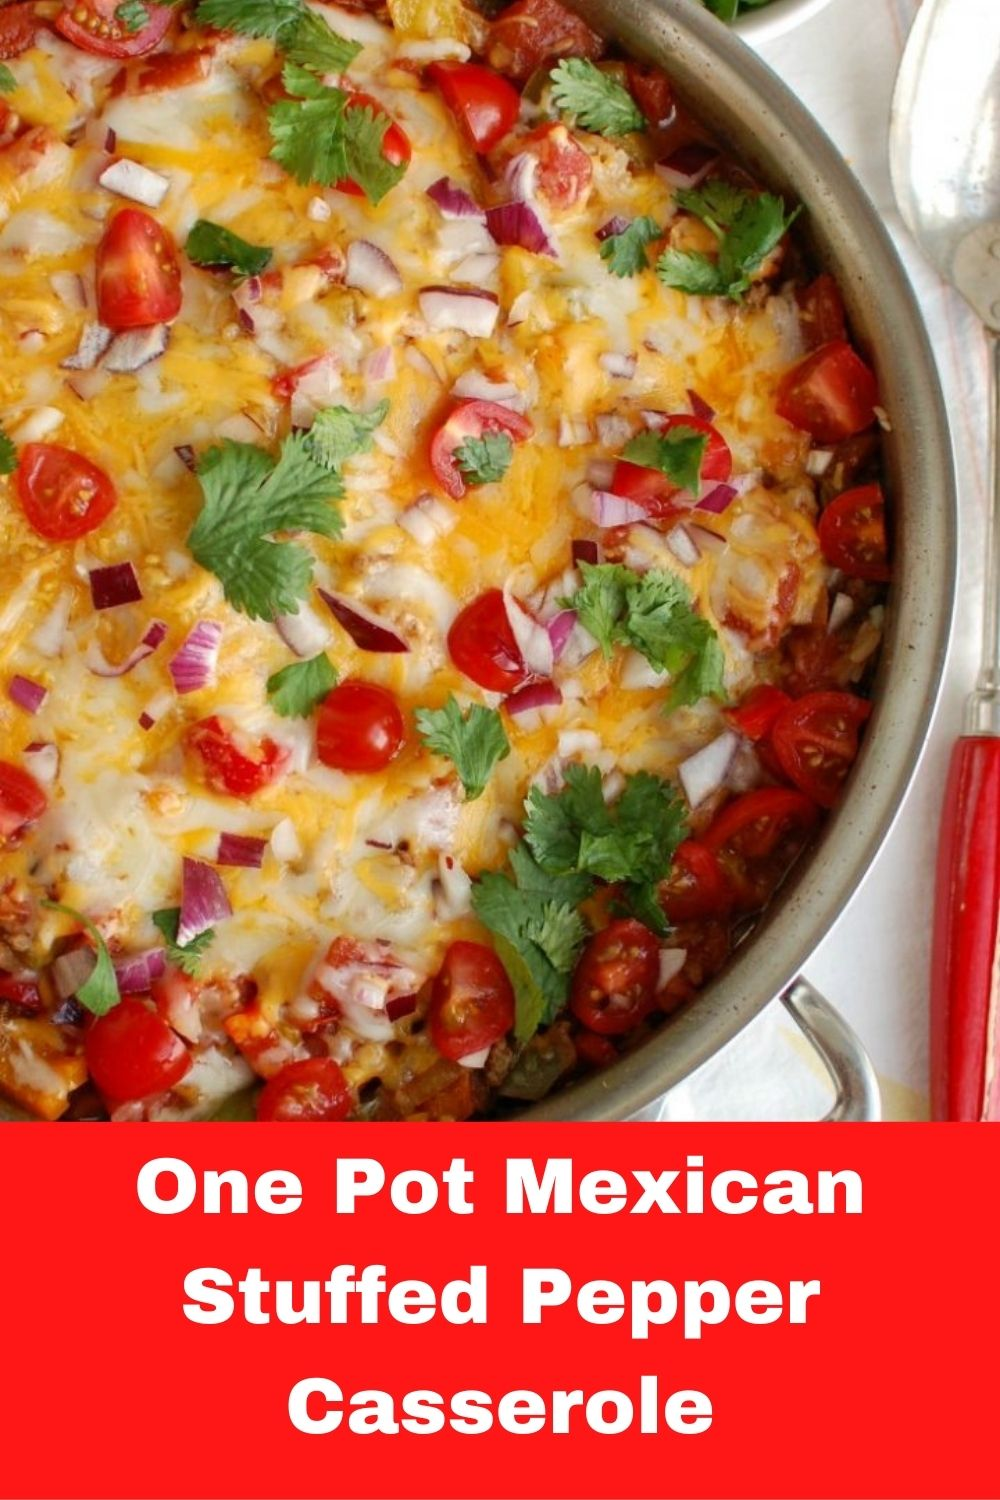 One Pot Mexican Stuffed Pepper Casserole with logo.